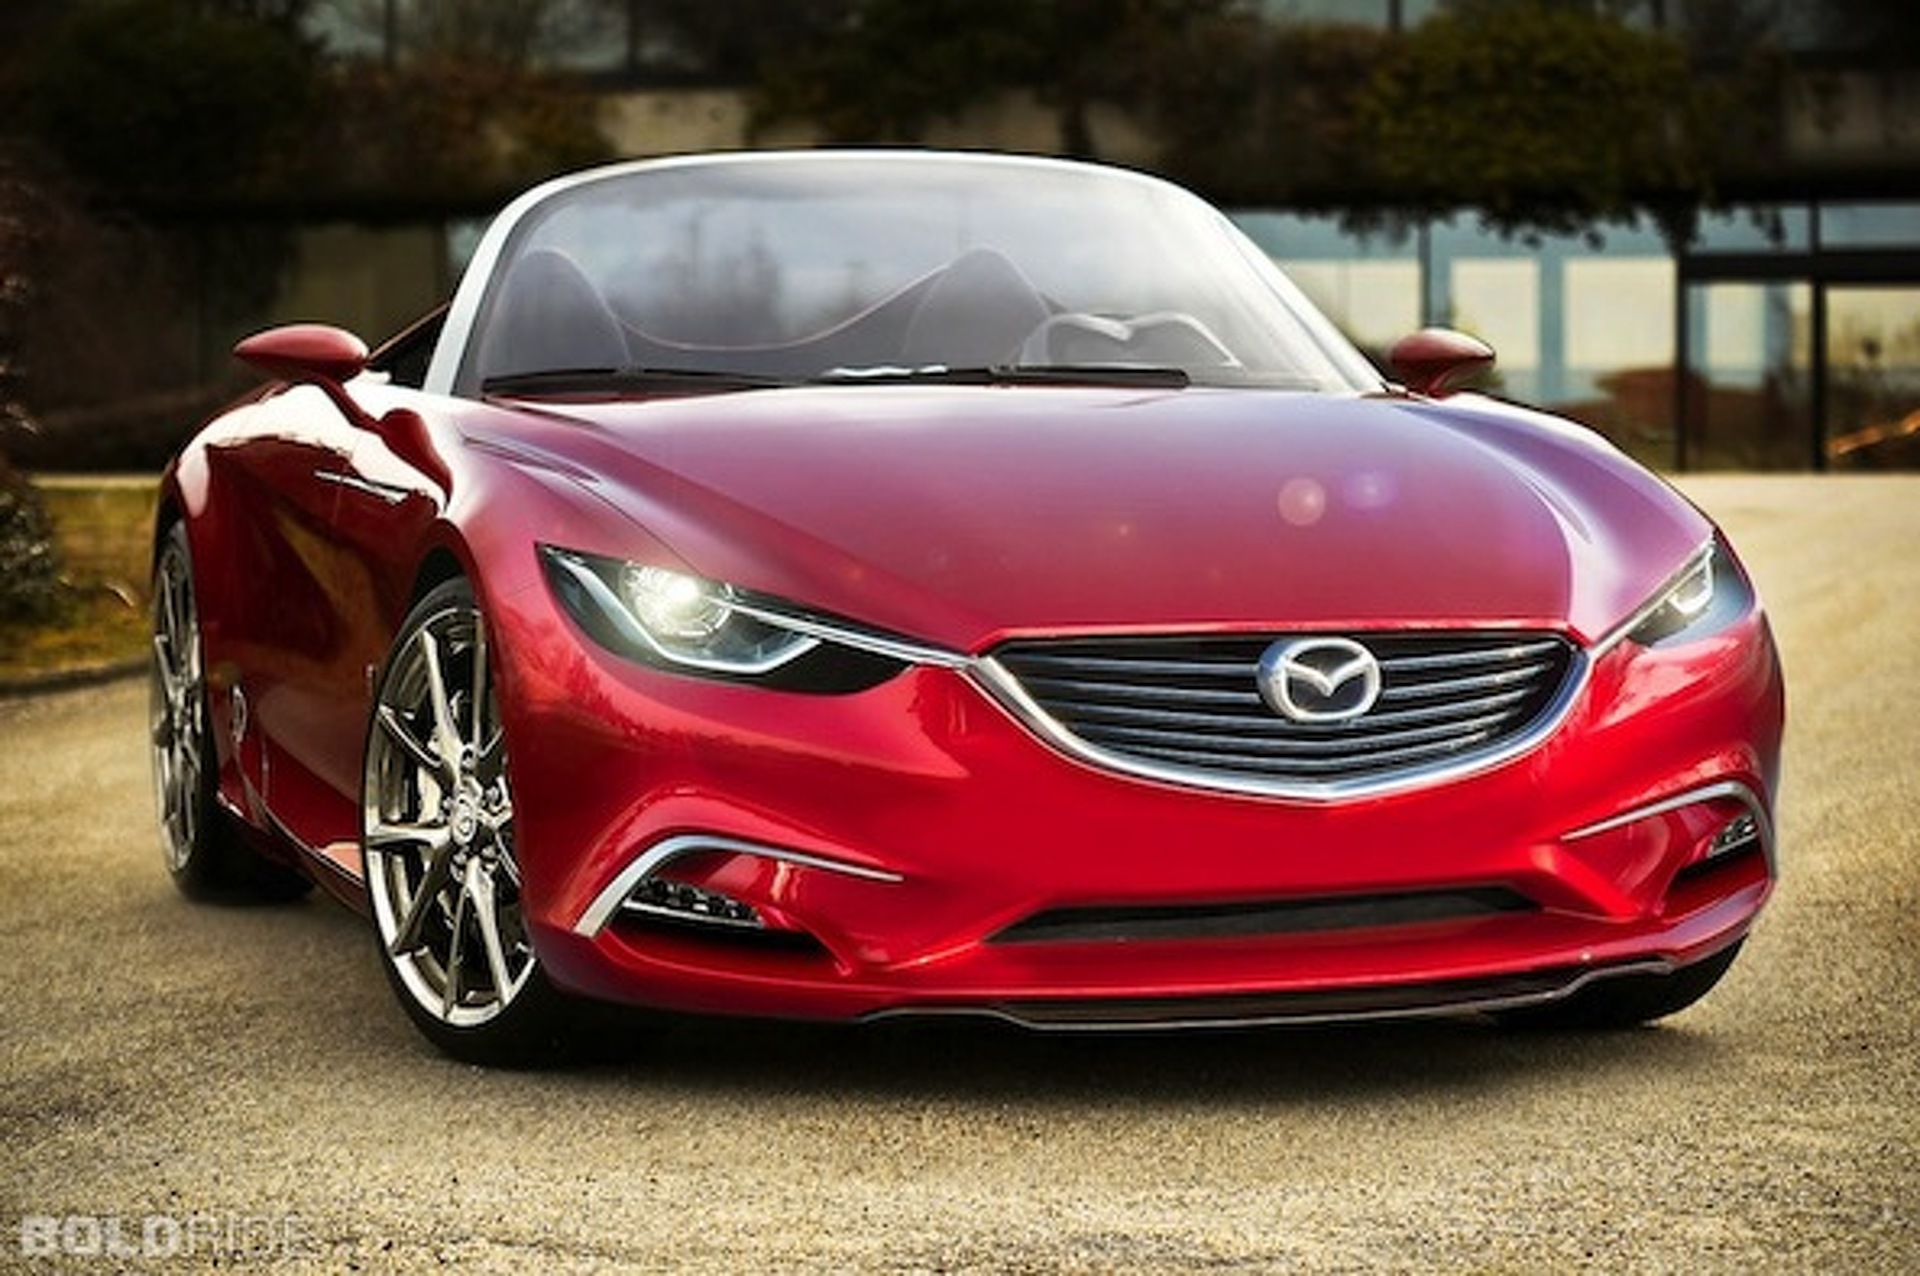 2015 Mazda MX-5 Miata to Debut in Chicago Next Month [UPDATE] Actually, It's Not.